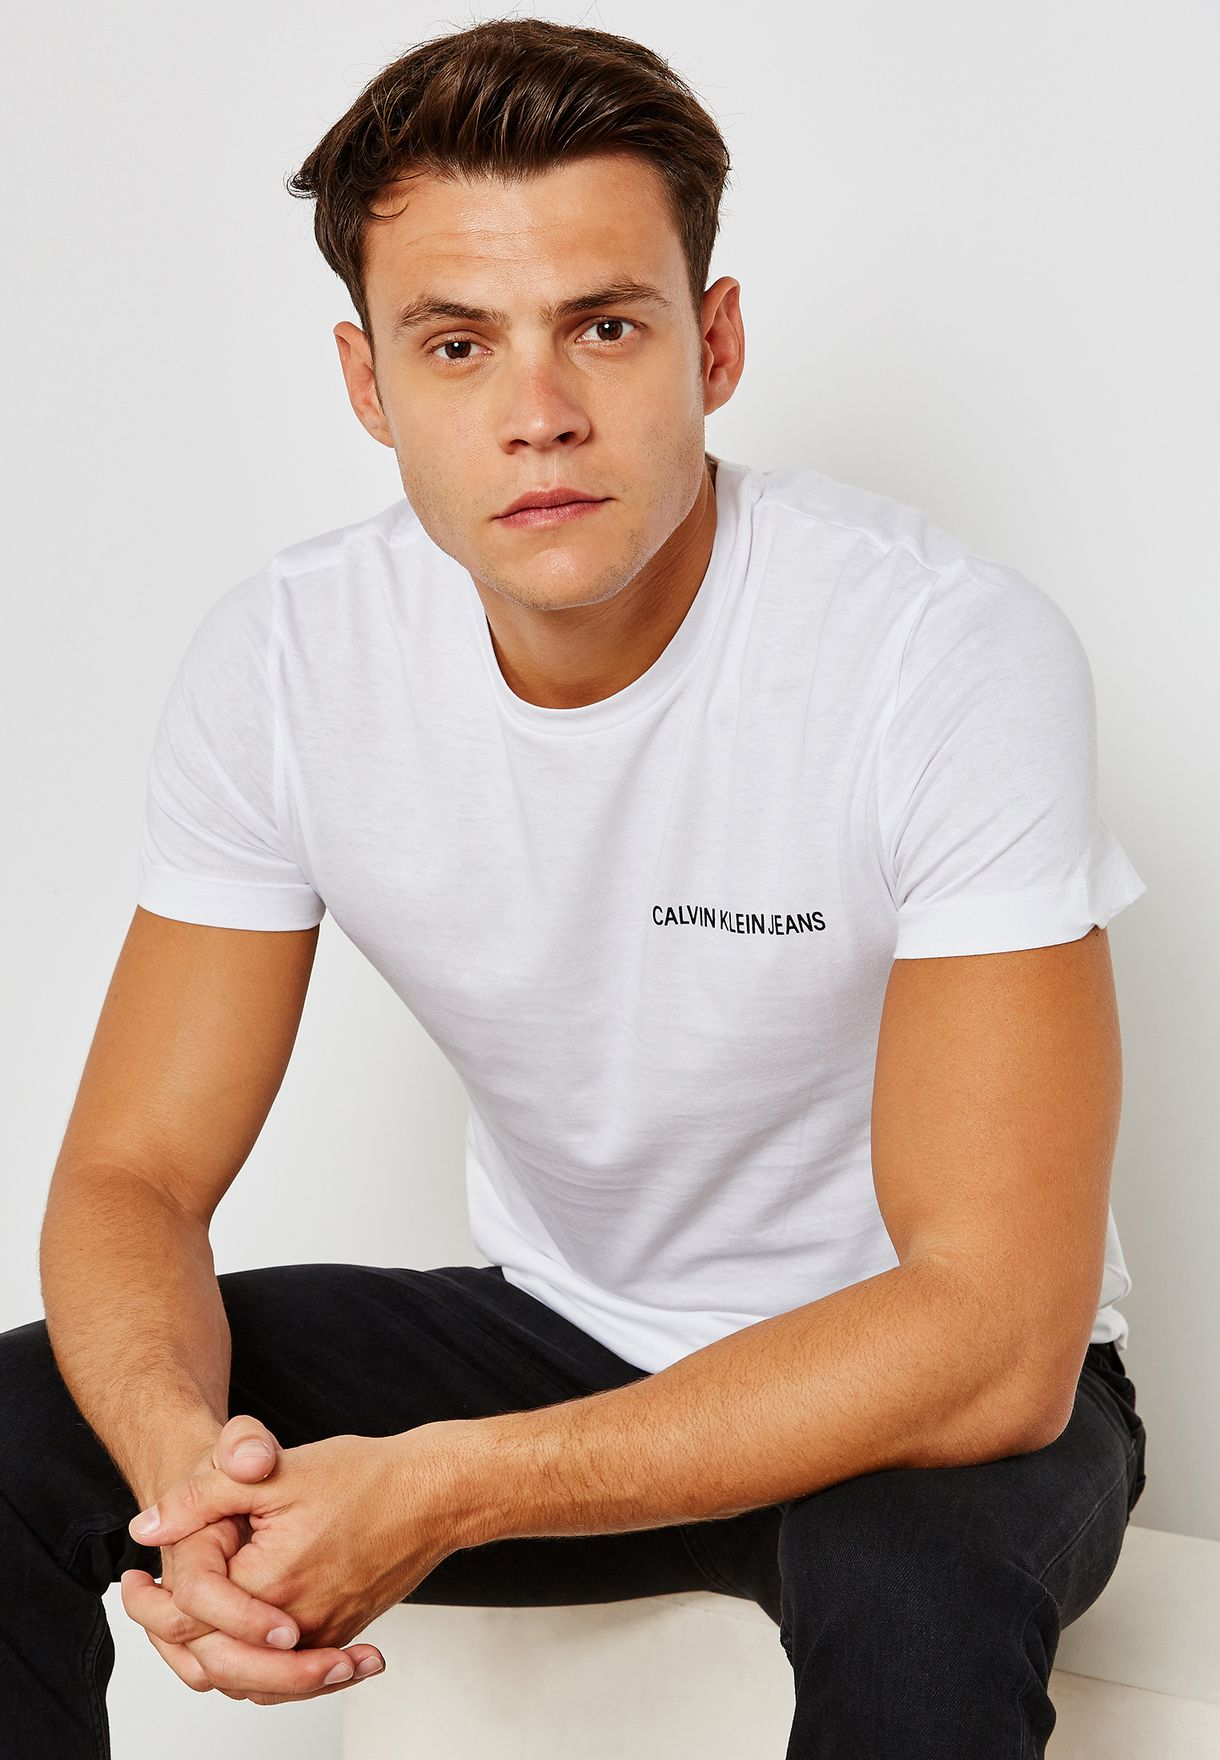 58ad4430aed4 Shop Calvin Klein Jeans white Chest Institutional Logo T-Shirt ...